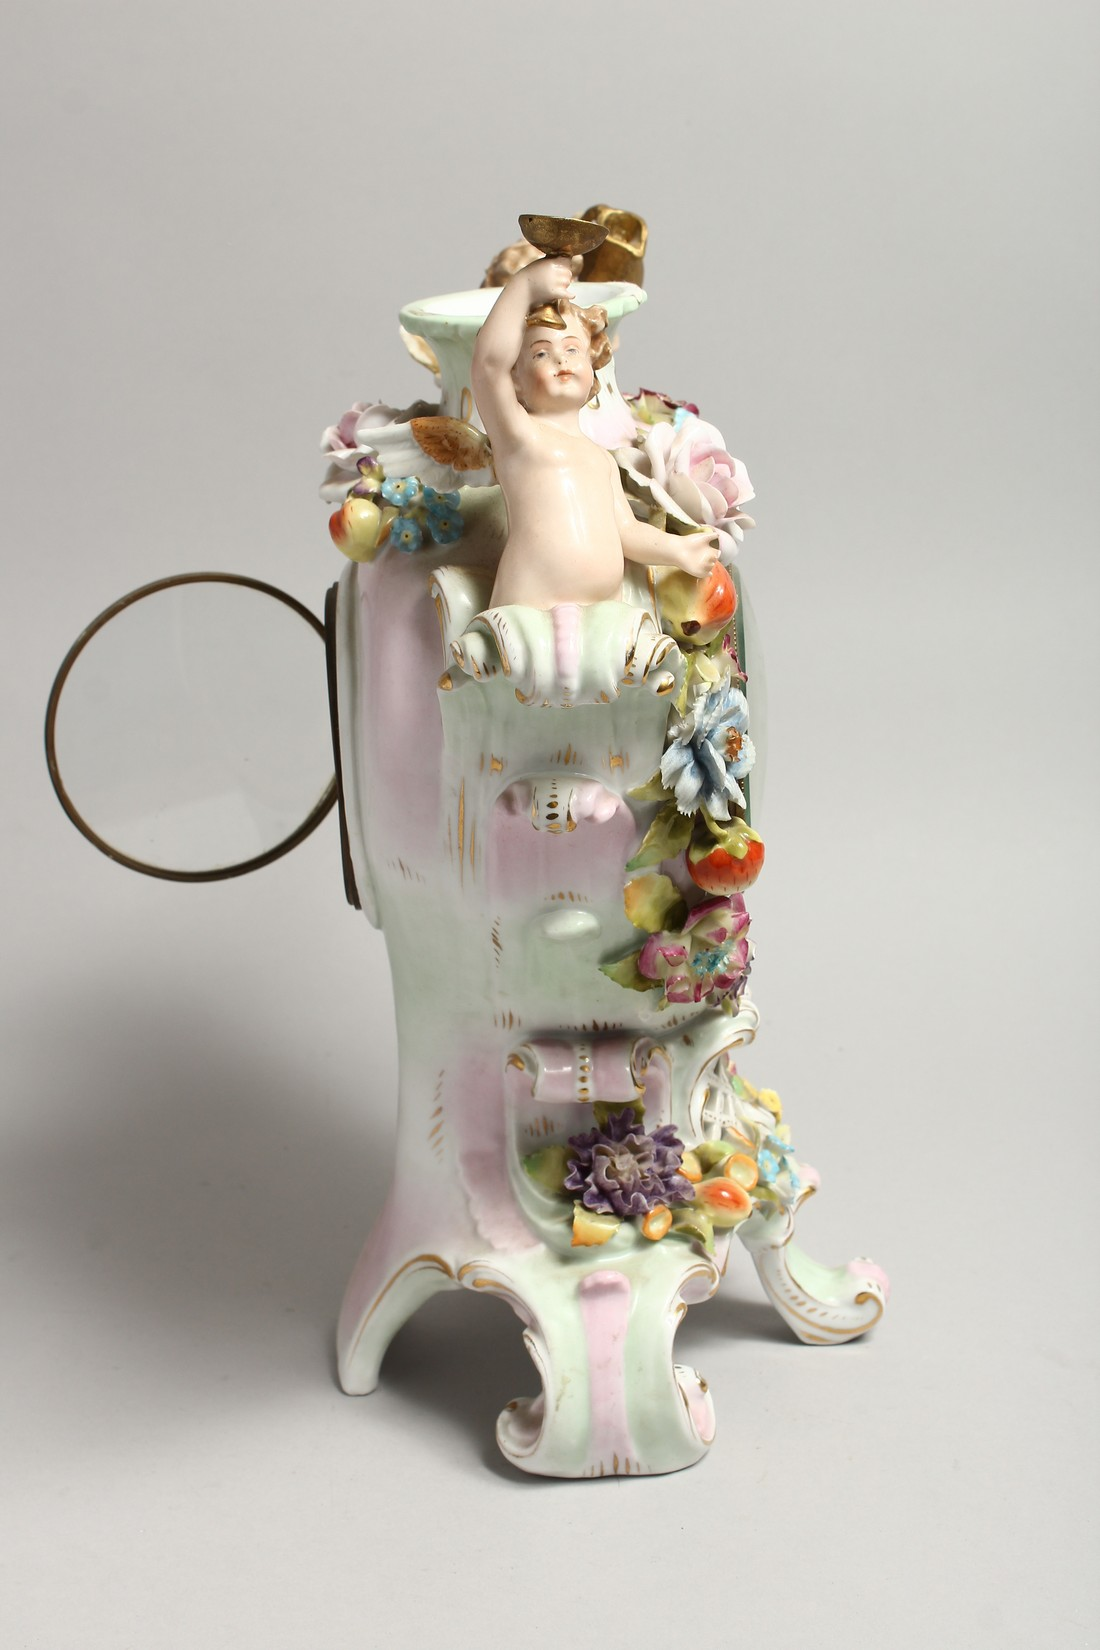 A CONTINENTAL PORCELAIN CUPID AND FLOWER ENCRUSTED CLOCK, with blue and white Roman numerals. - Image 4 of 7